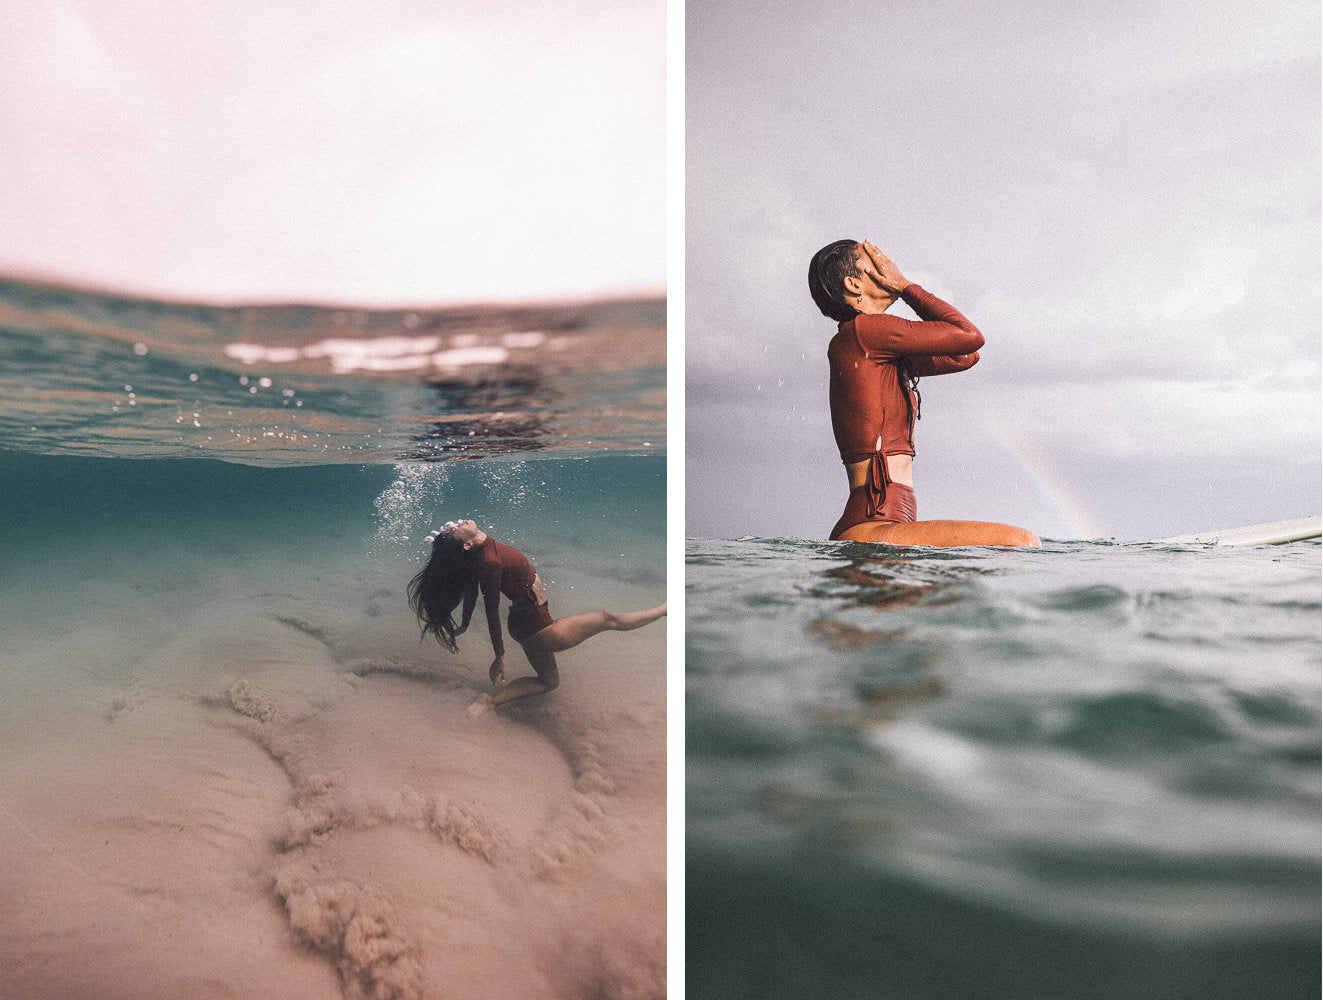 underwater surf photography lore of the sea clementine bourke